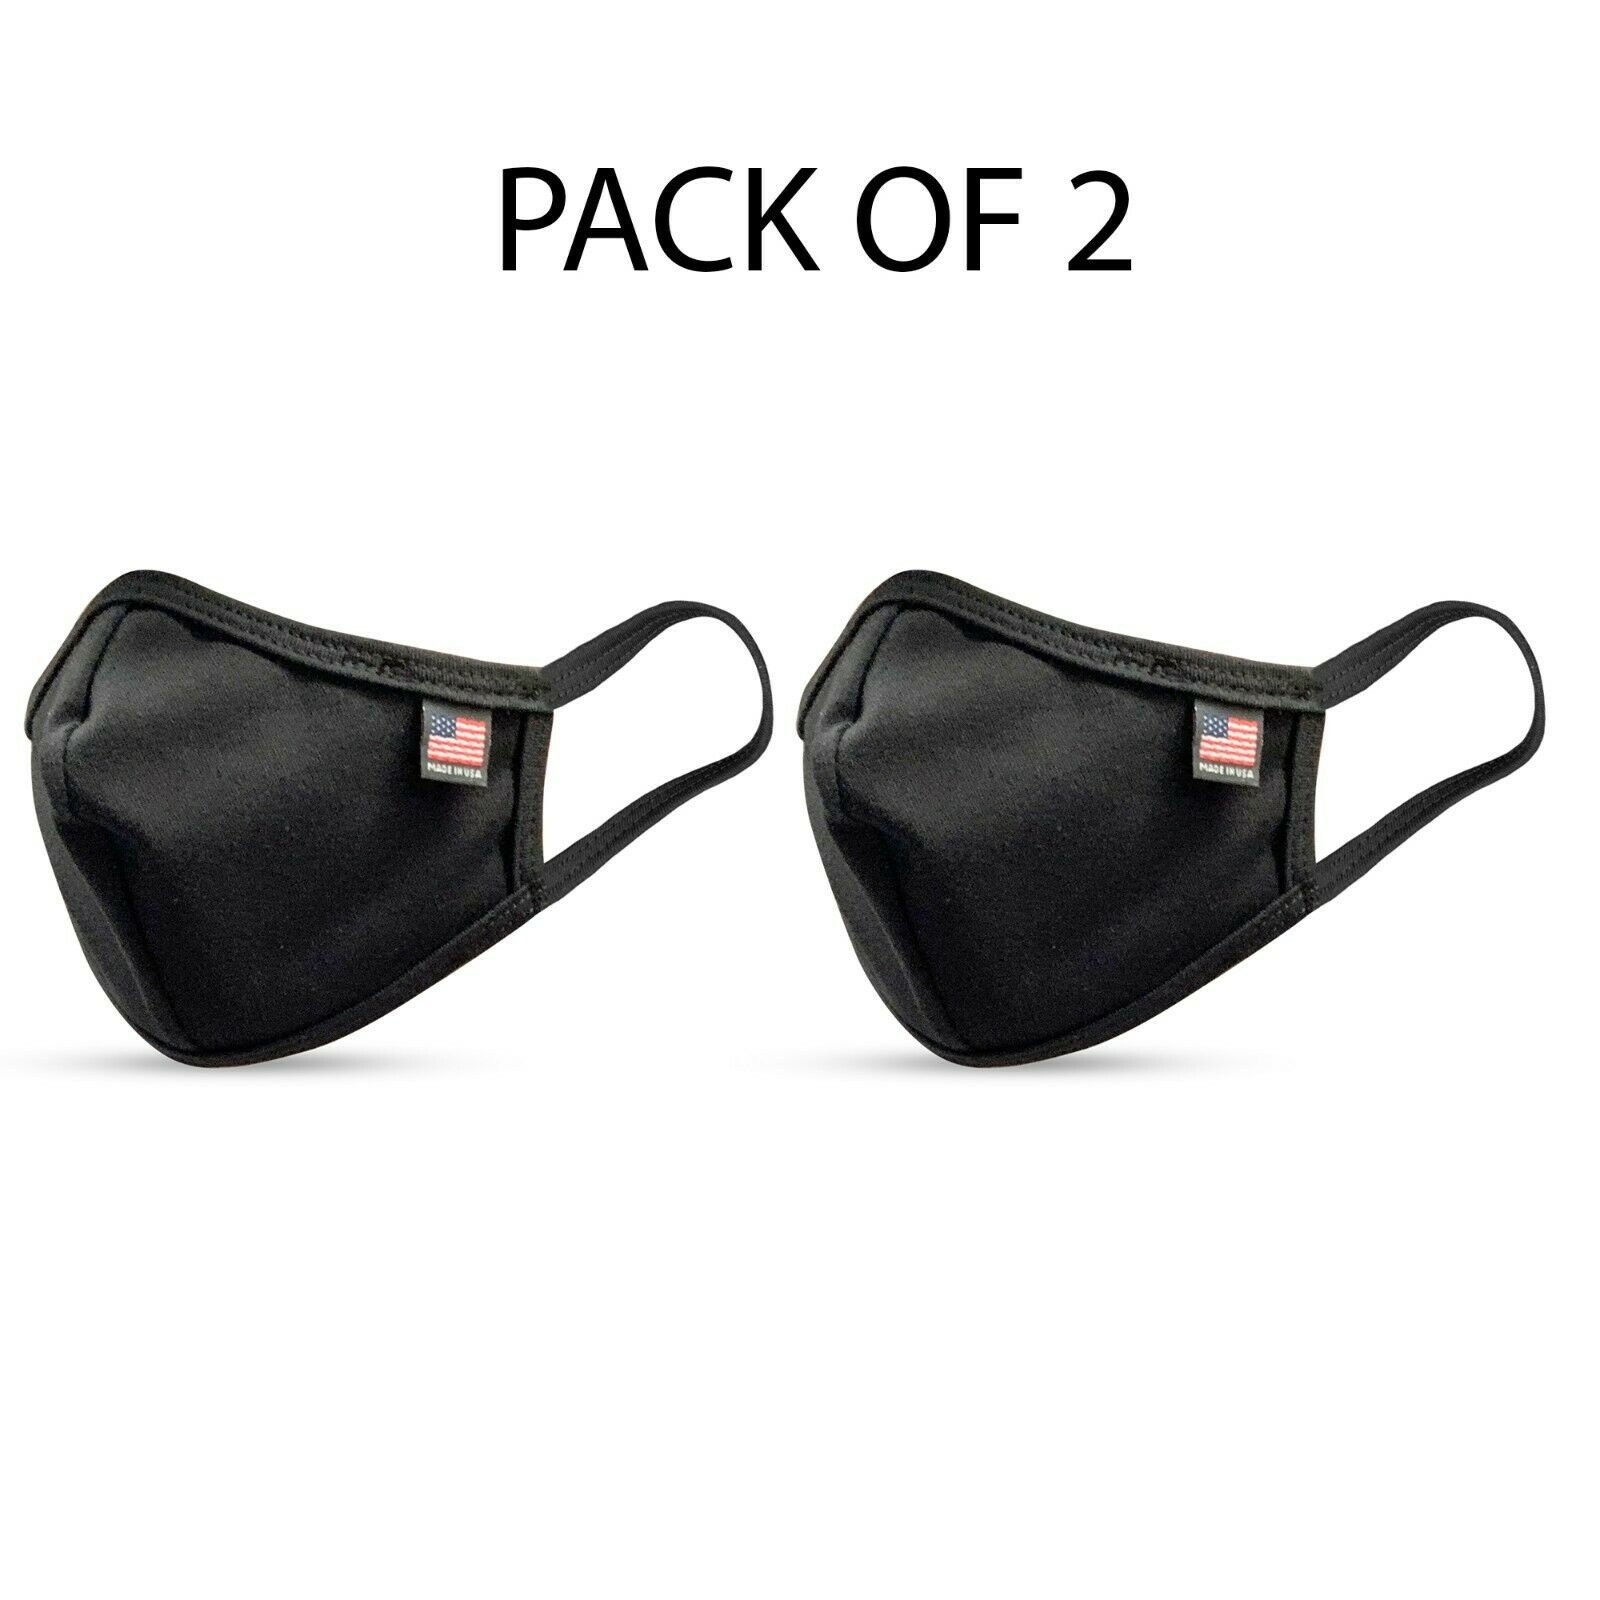 2PCS PACK Made in USA Face Cotton Mask (black) Accessories